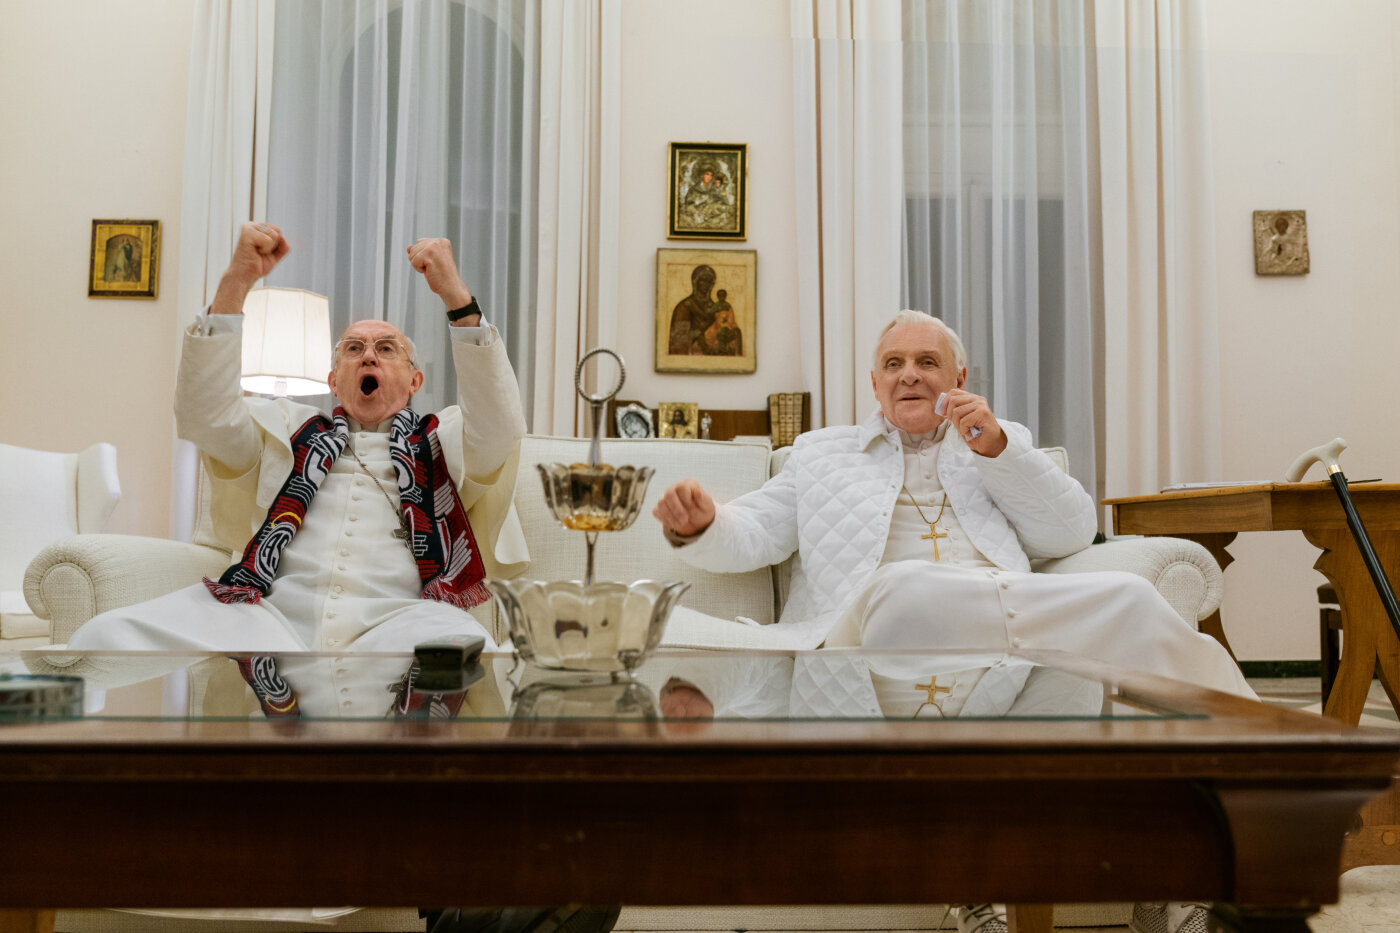 2020_01_02_The Two Popes_009jpg